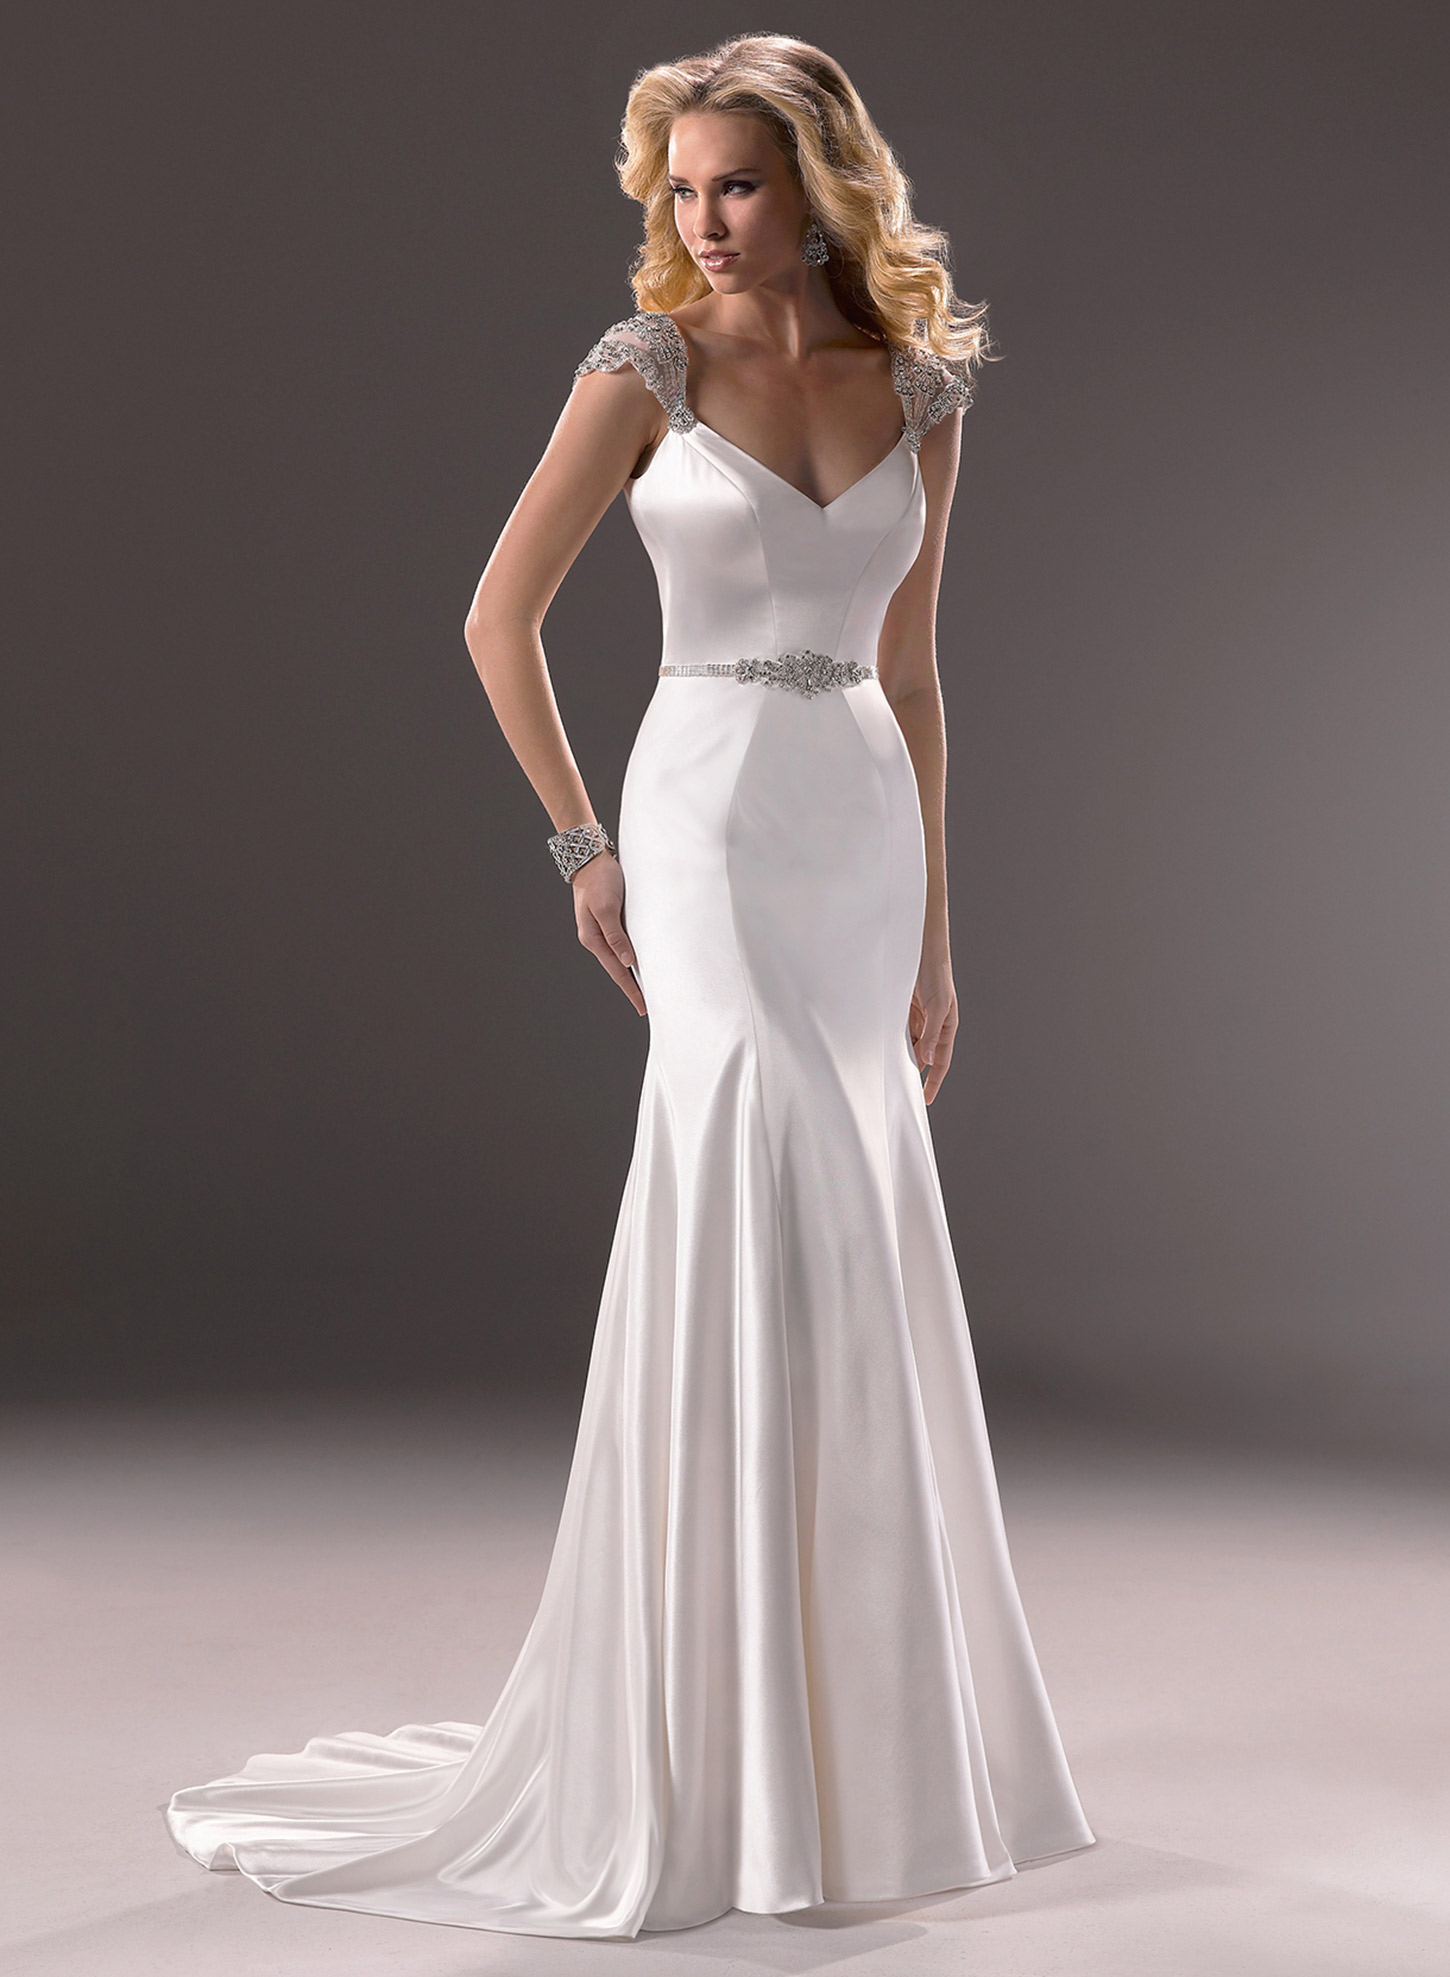 Maggie Scottero Wedding Dresses 2014 25 01302014